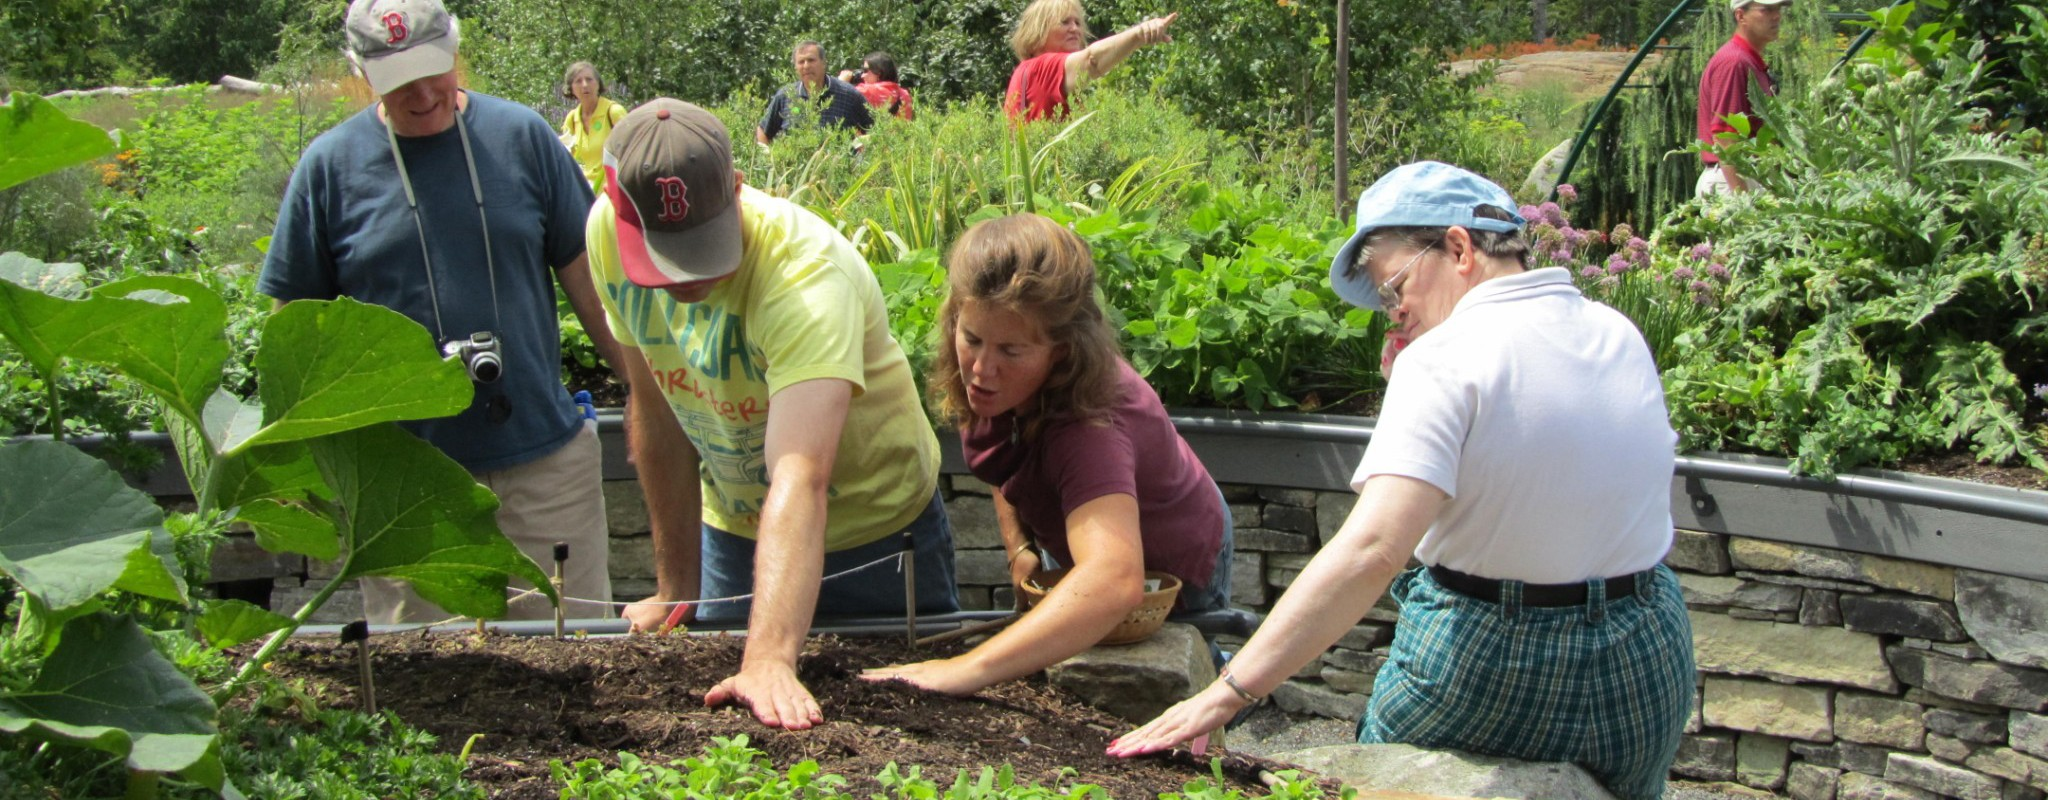 Therapeutic Horticulture at CMBG